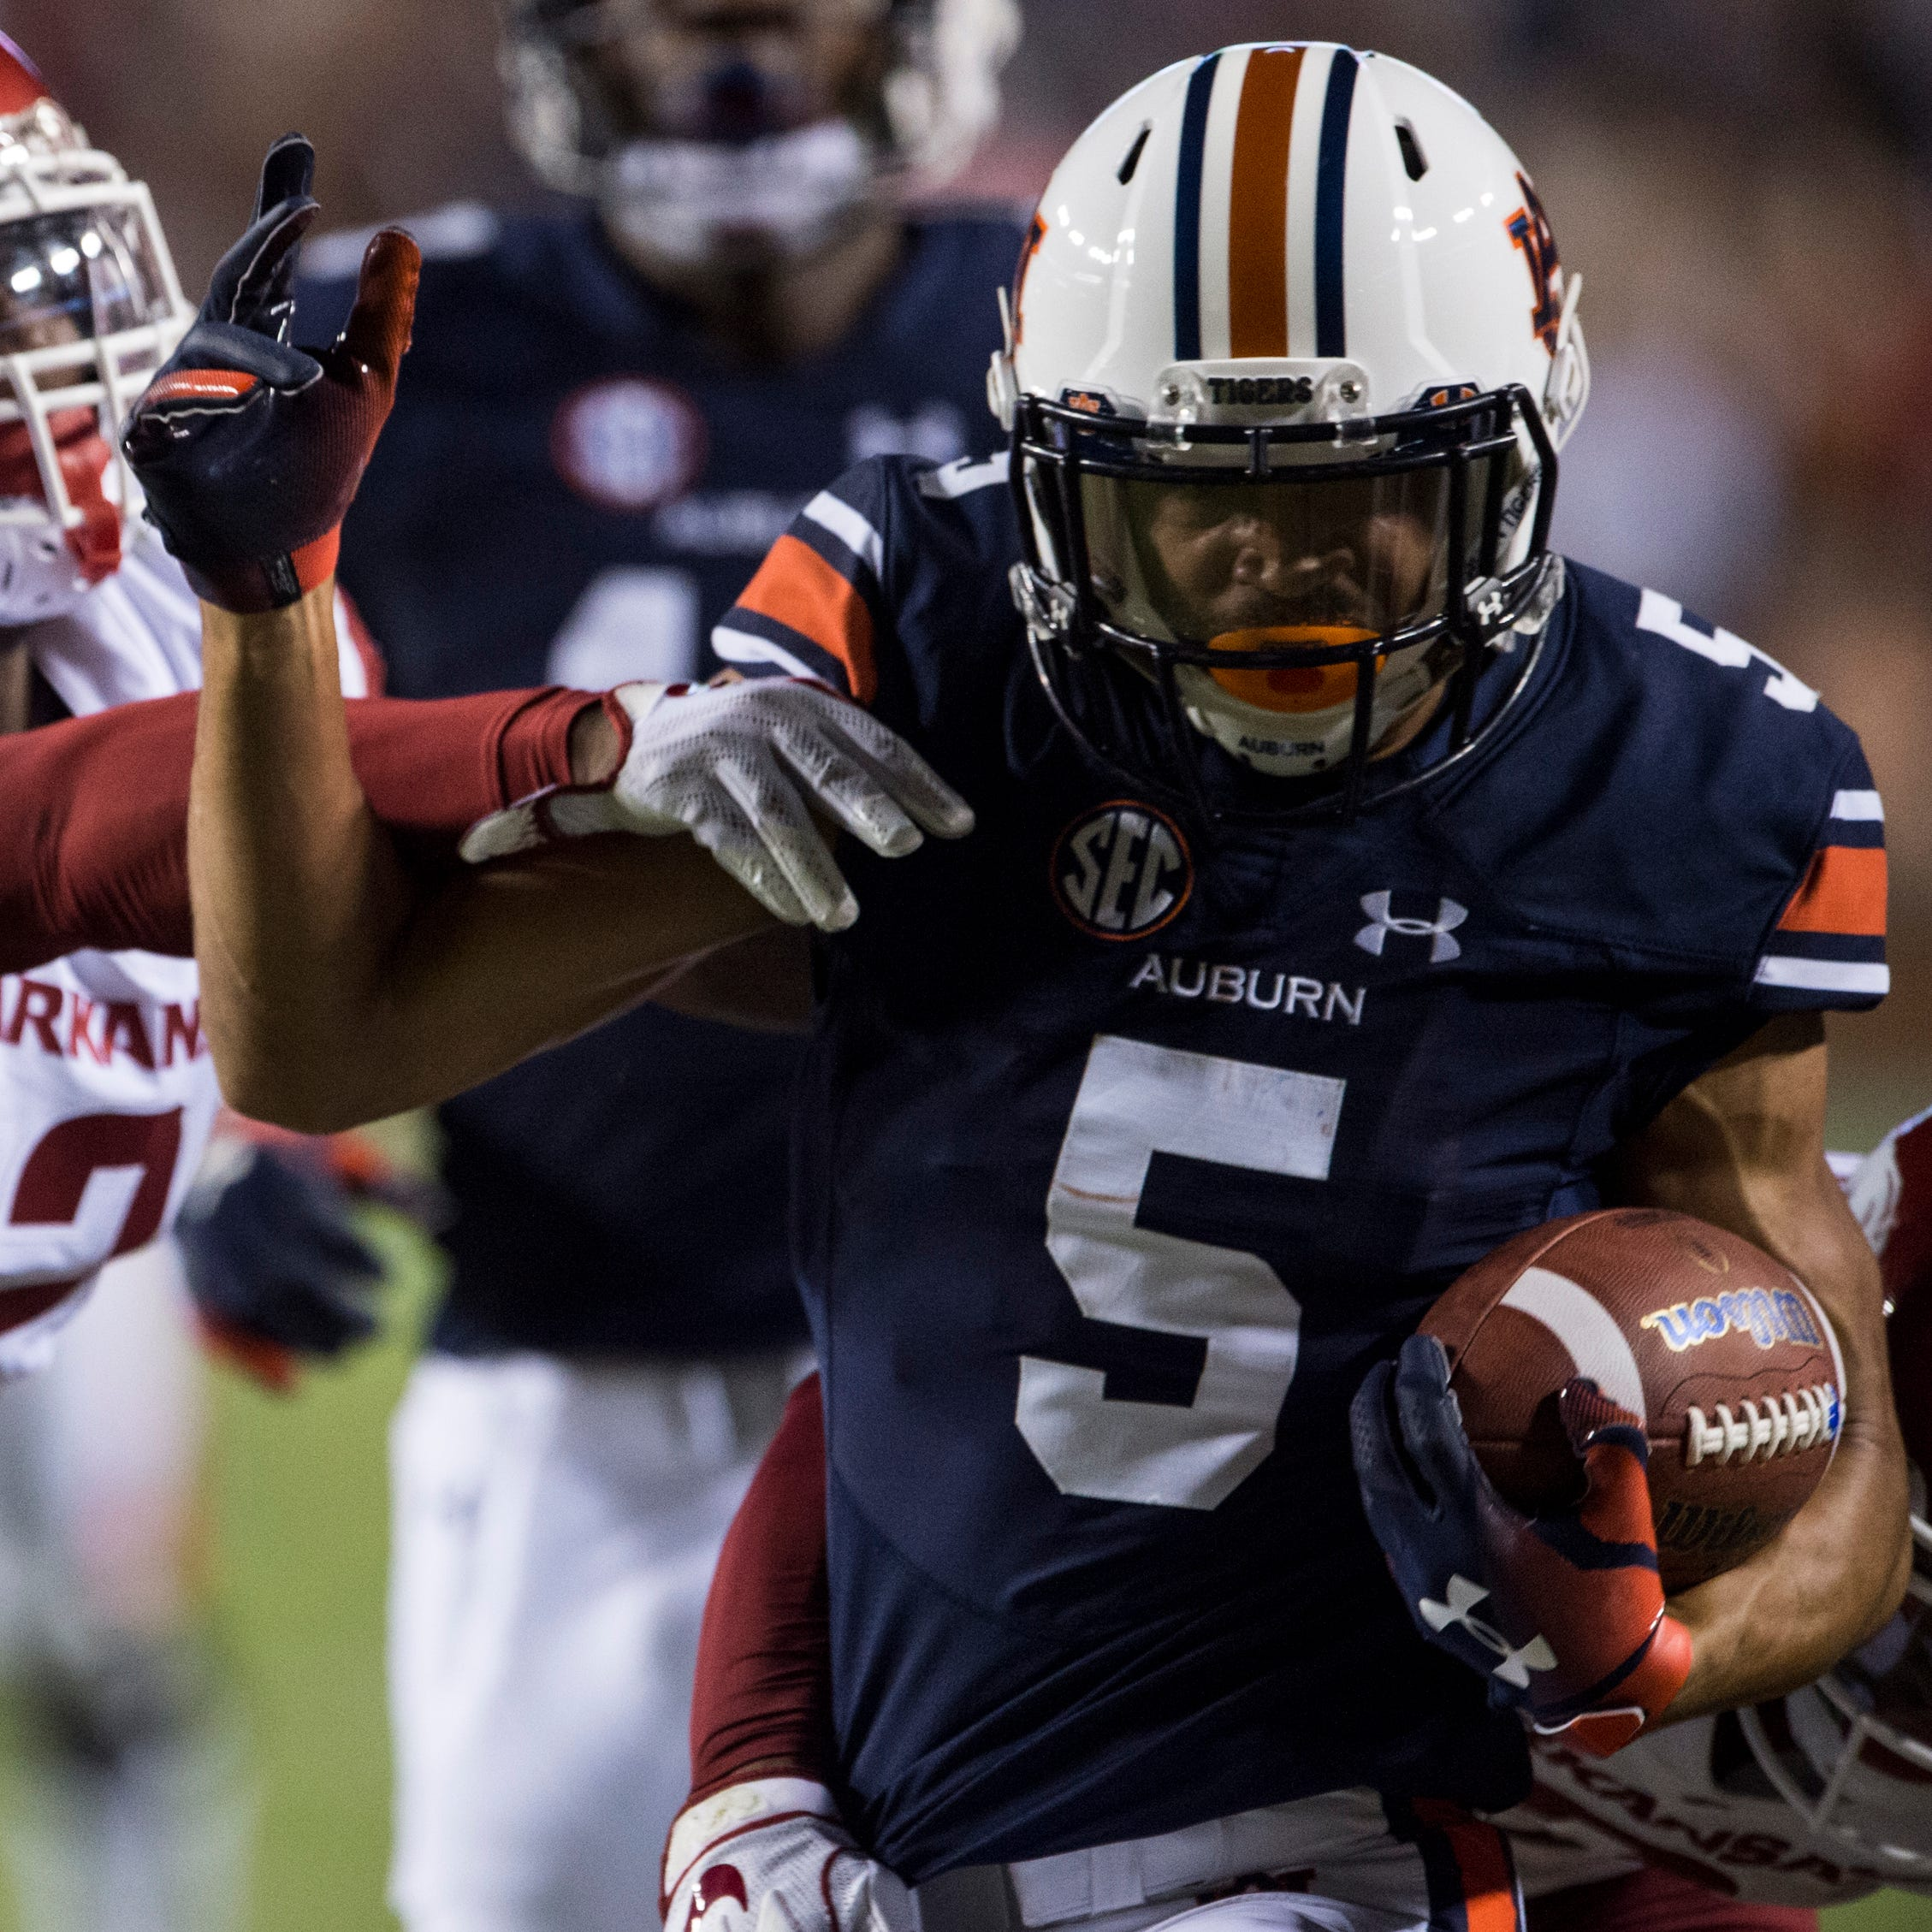 Face it, it's time to start worrying about Auburn offense